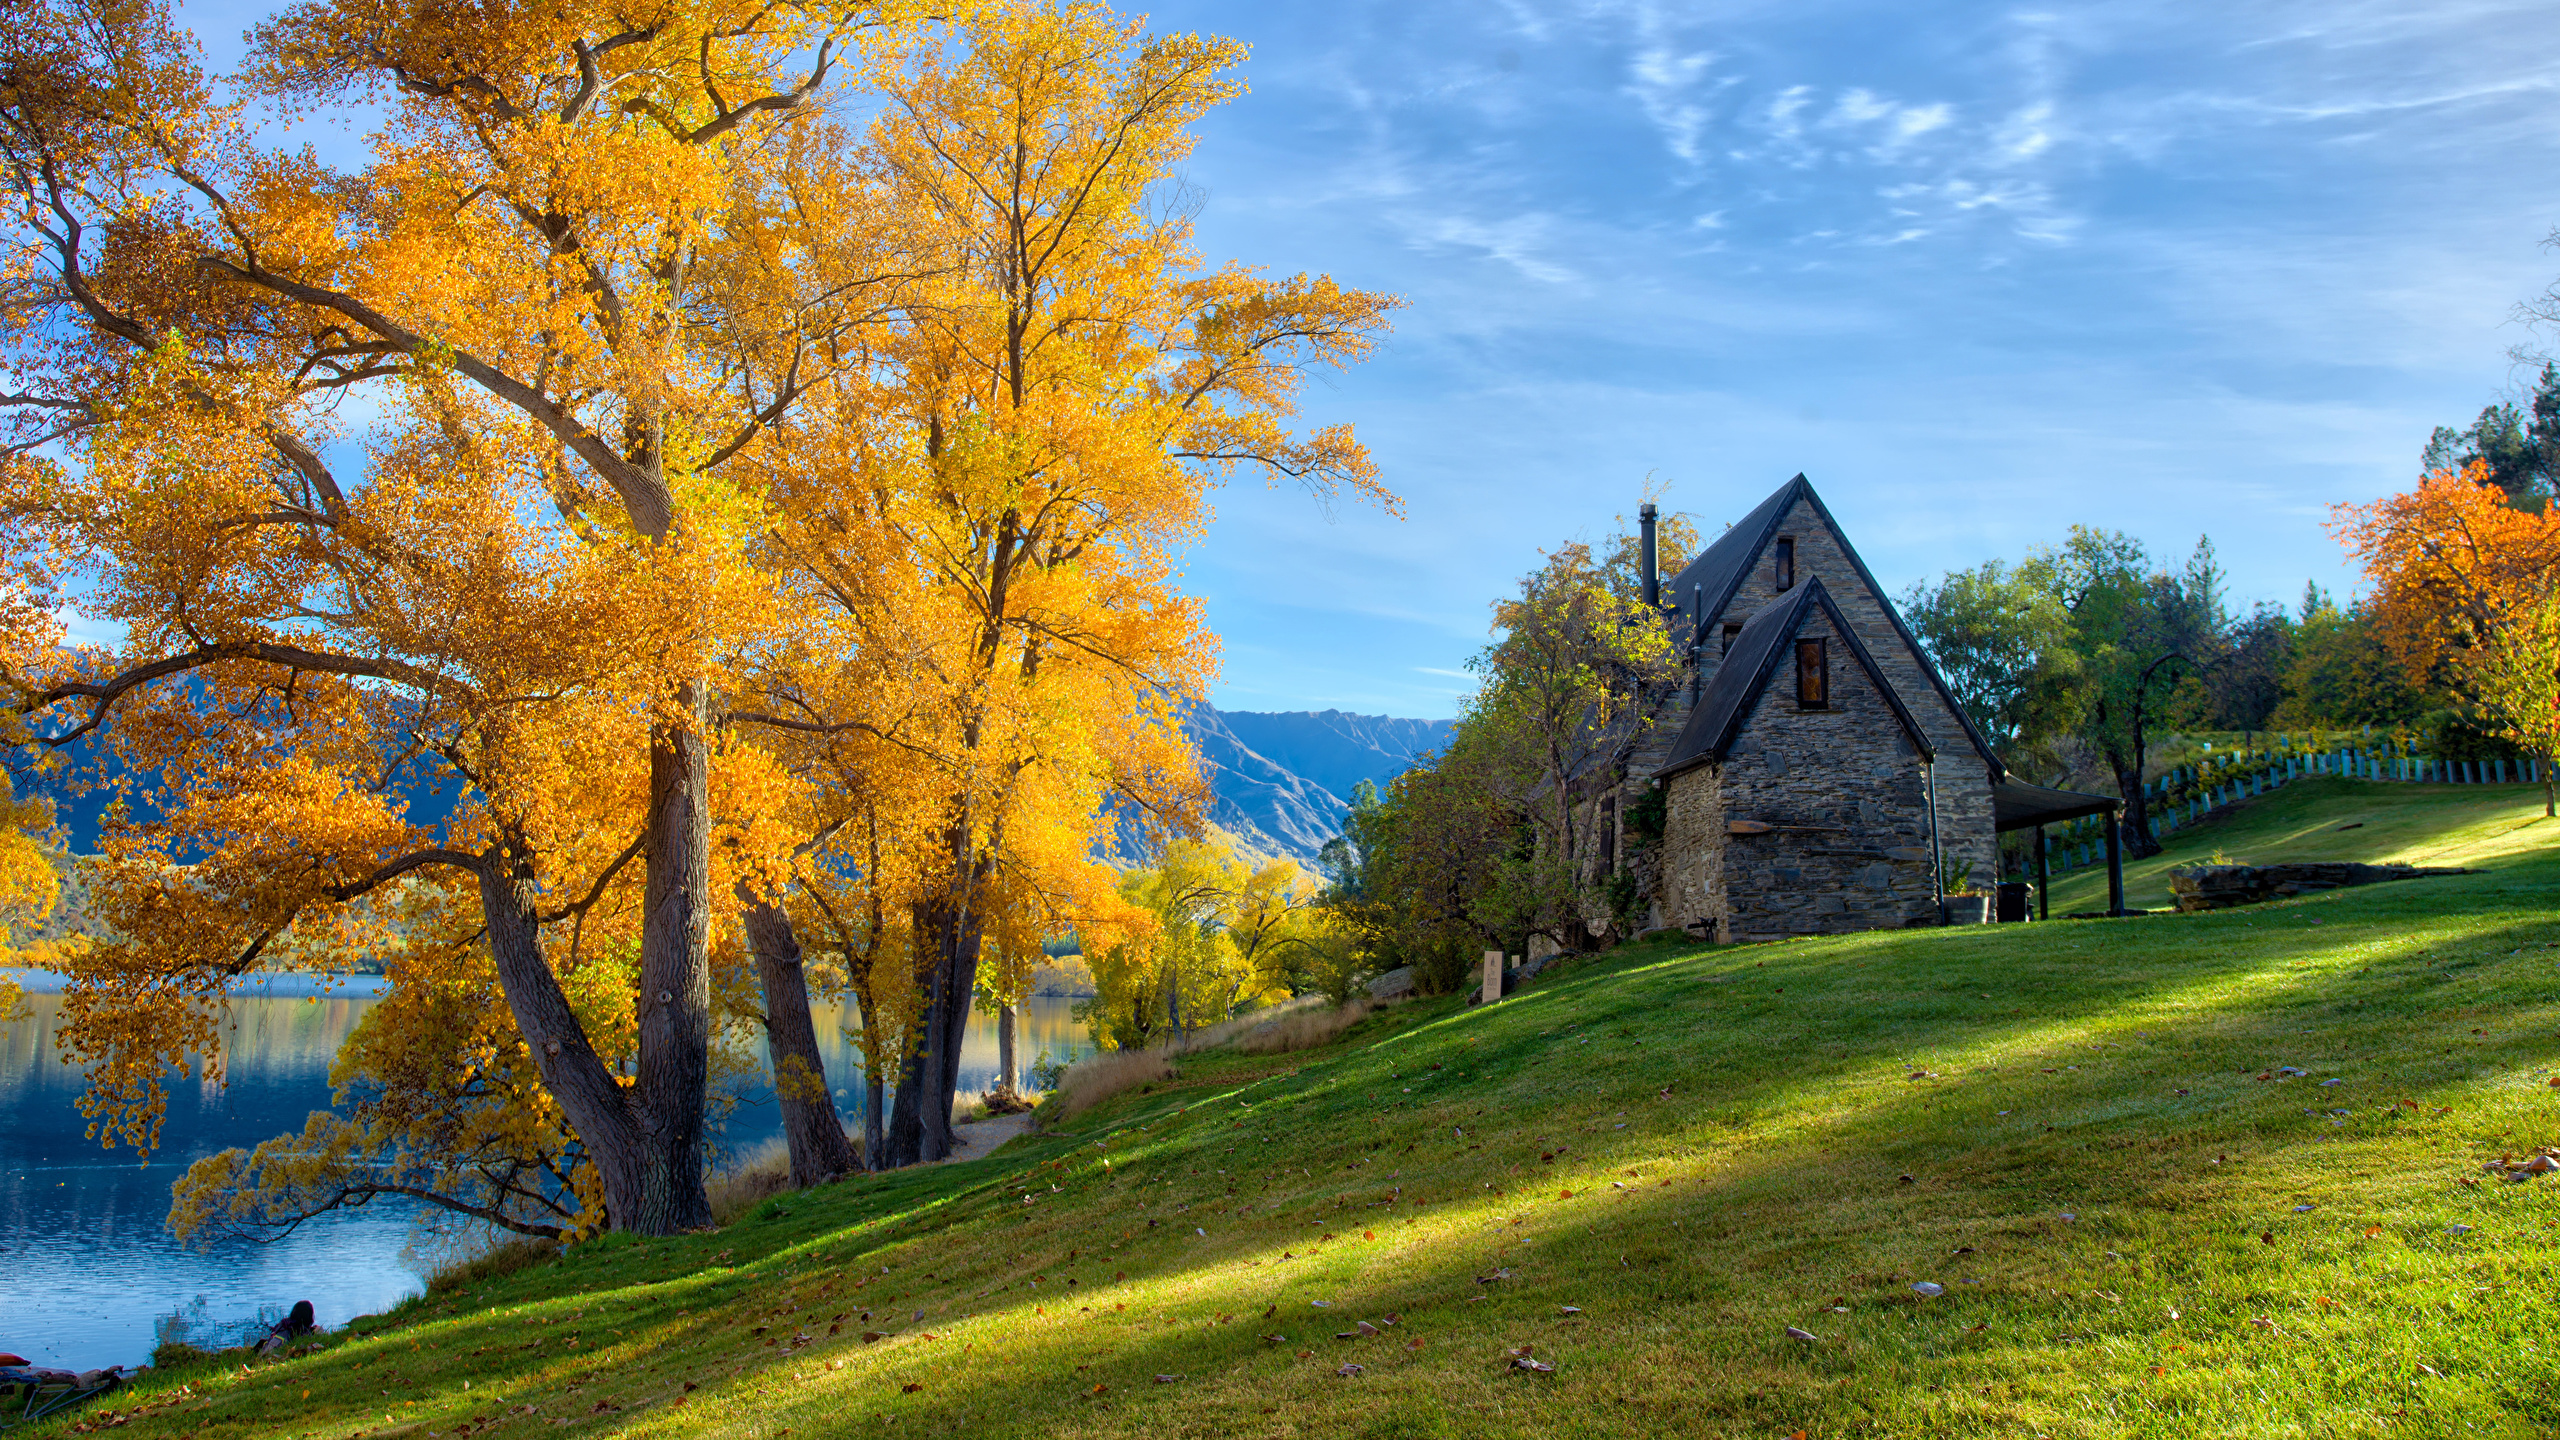 Picture New Zealand Queenstown Hdr Nature Autumn Grass 2560x1440